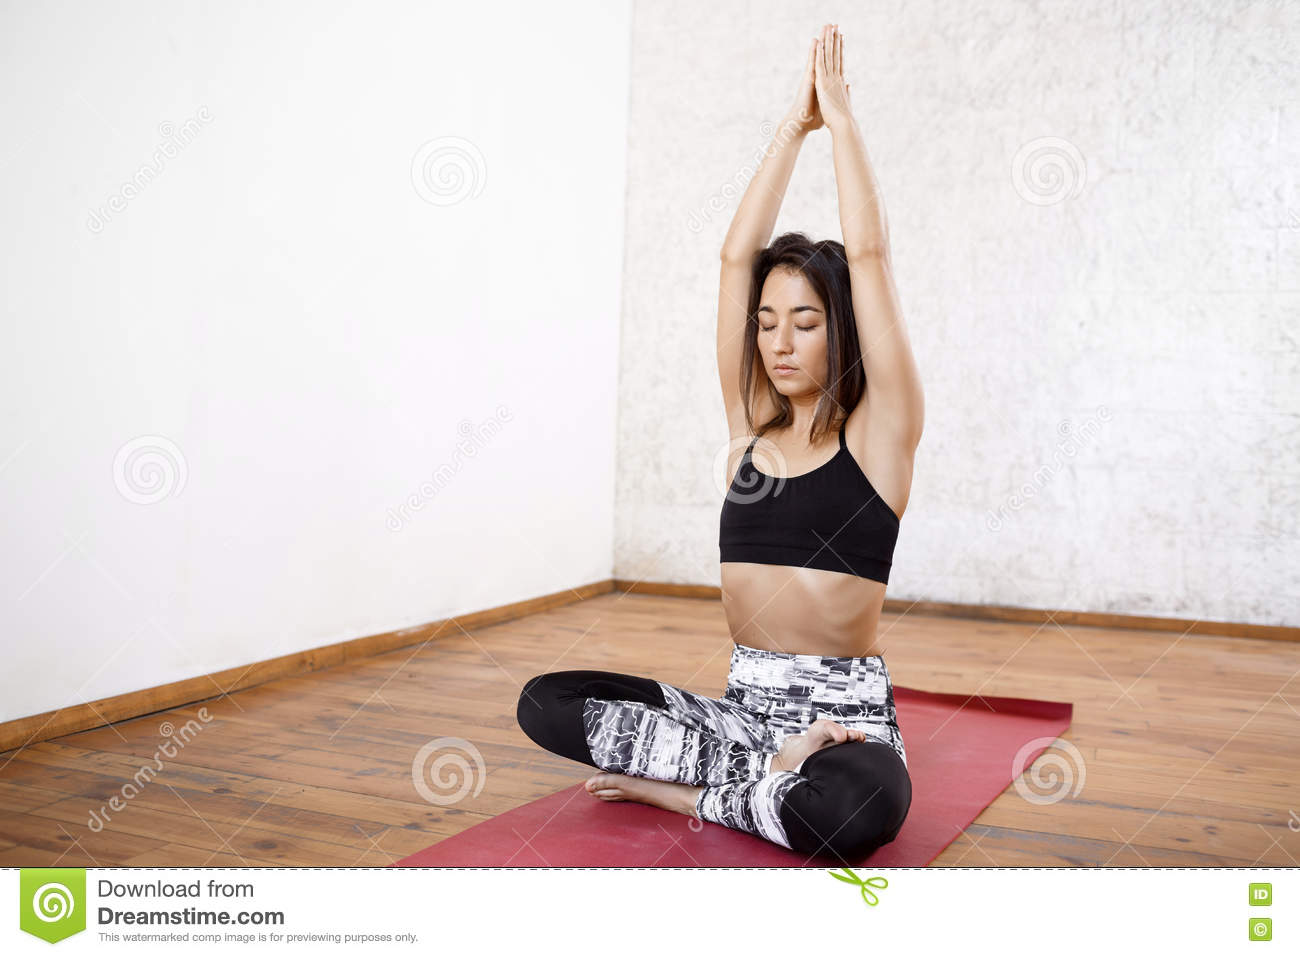 What young girl nude yoga flexible are